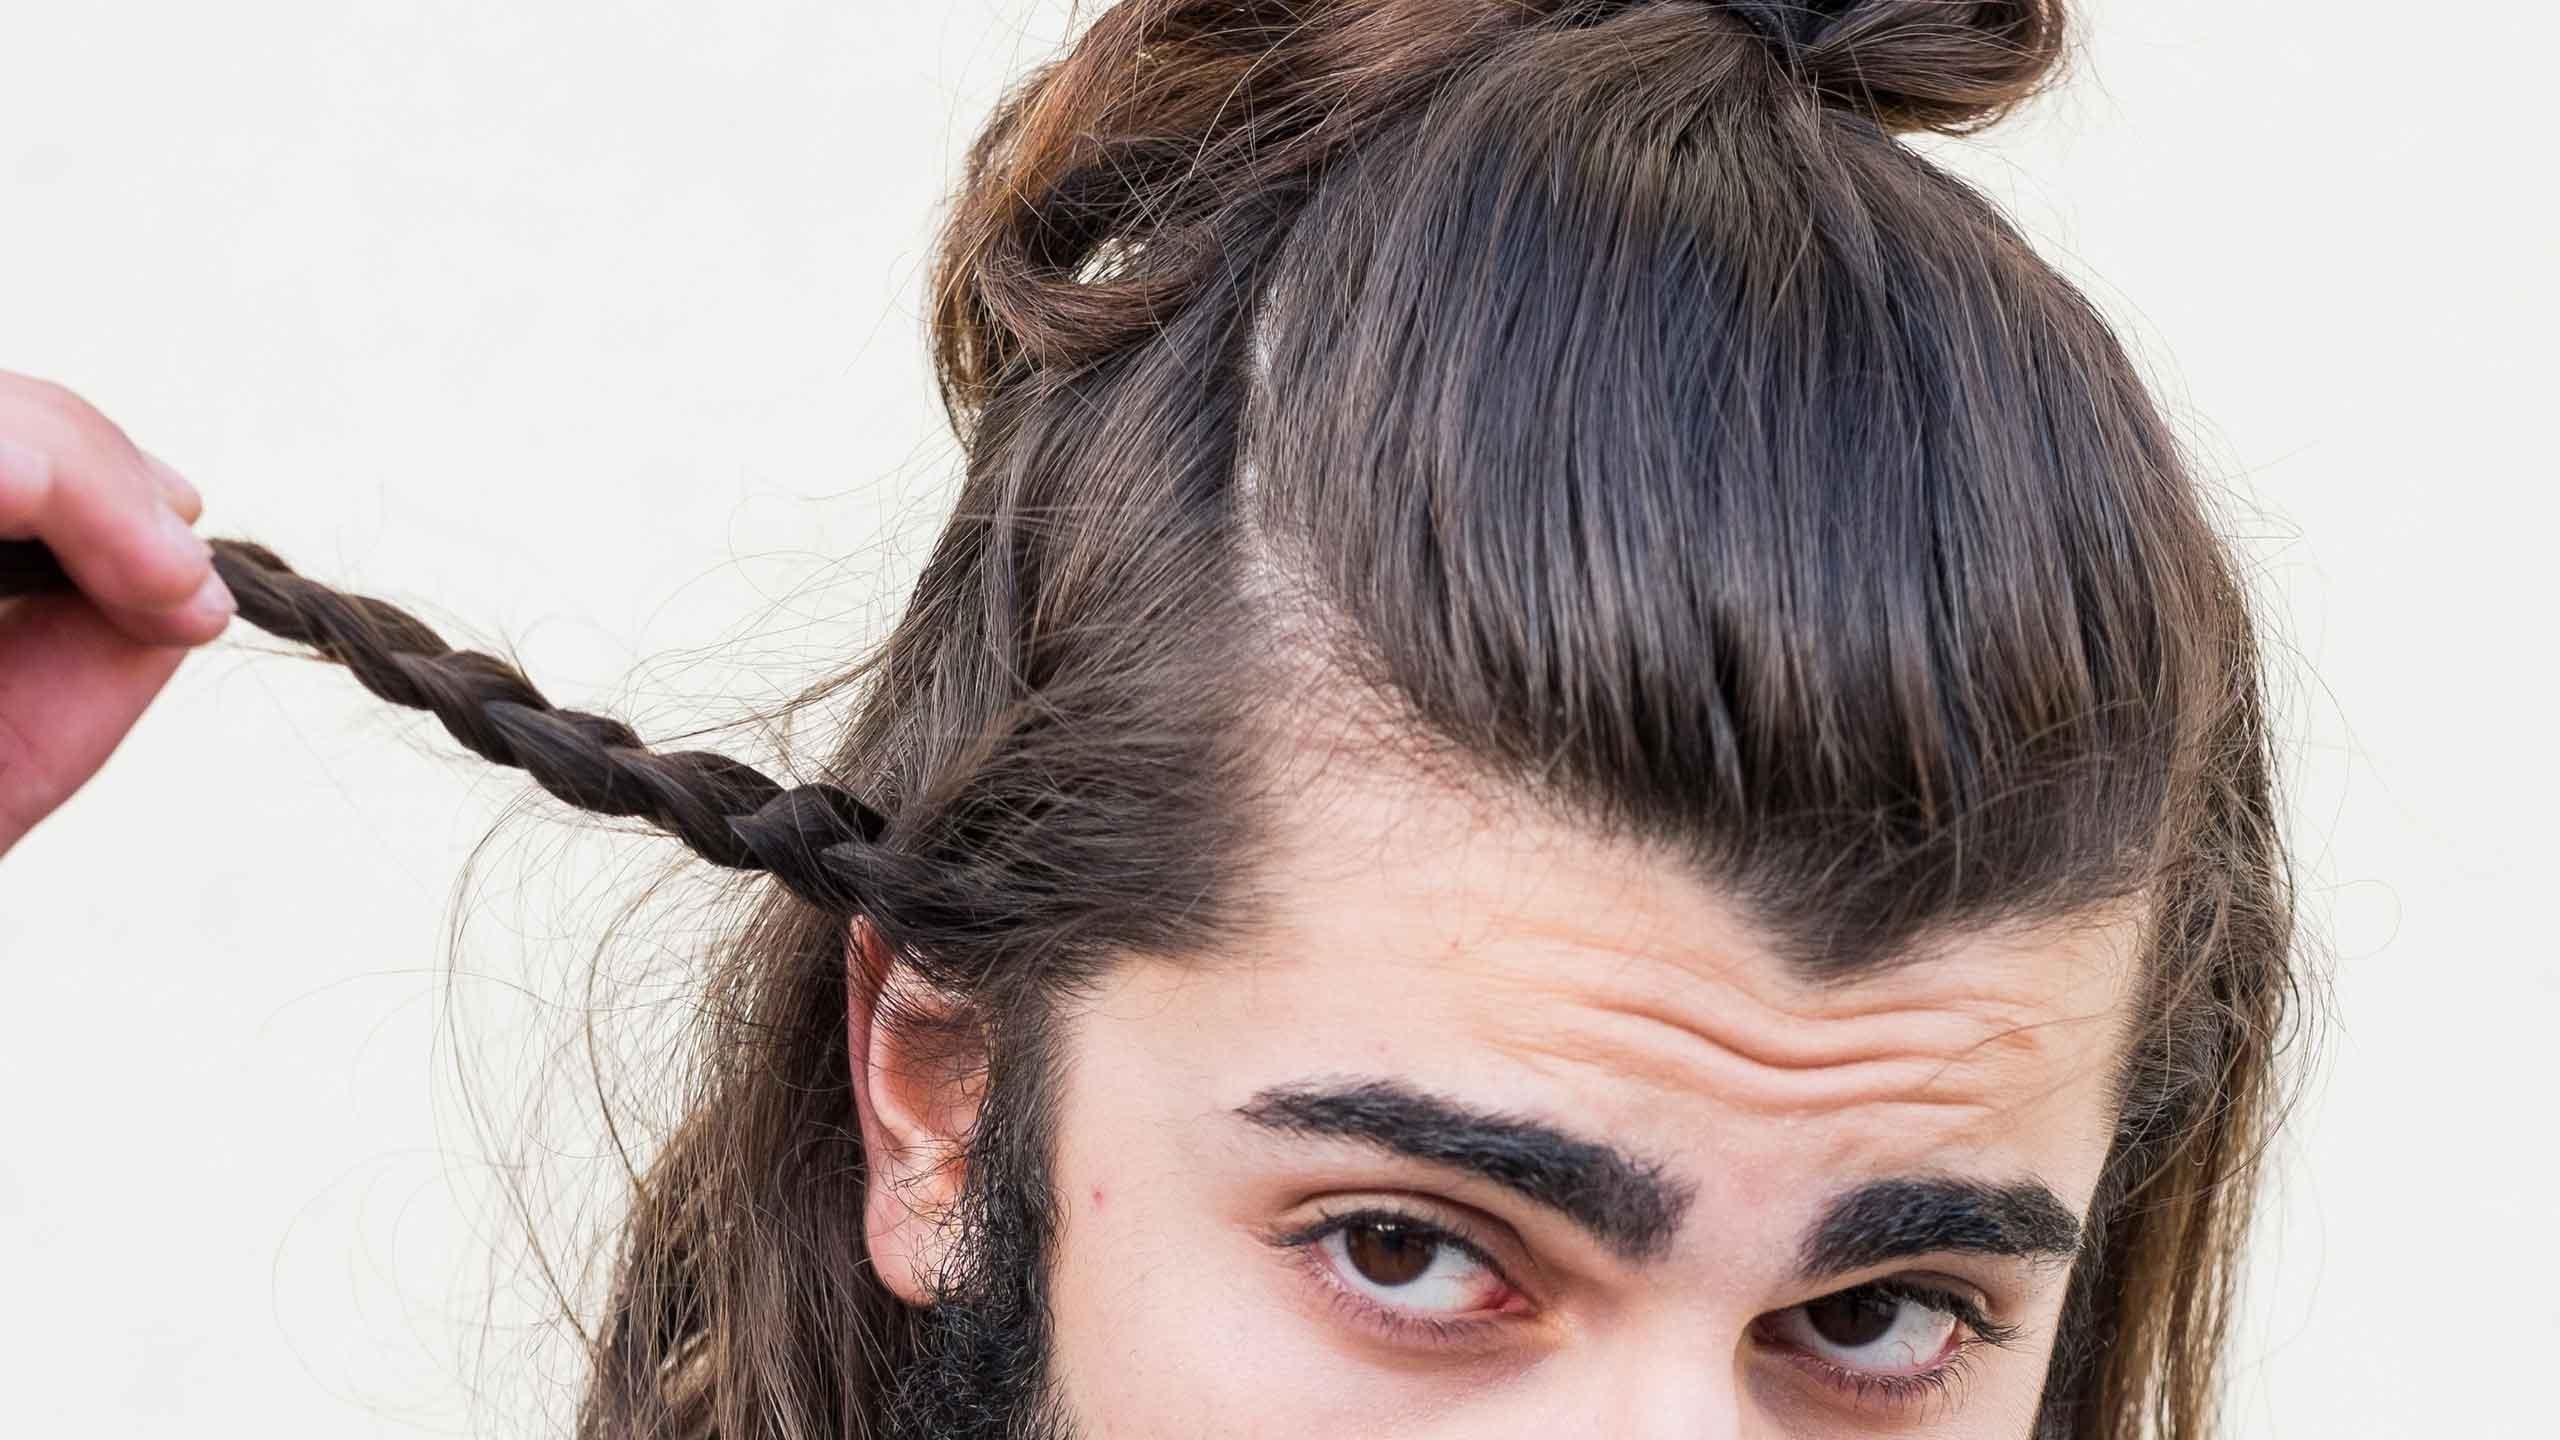 Cornrow Braid Hairstyles: 40 Best Braided Hairstyles For Boys And Within Favorite Braided Mohawk Pony Hairstyles With Tight Cornrows (View 5 of 20)